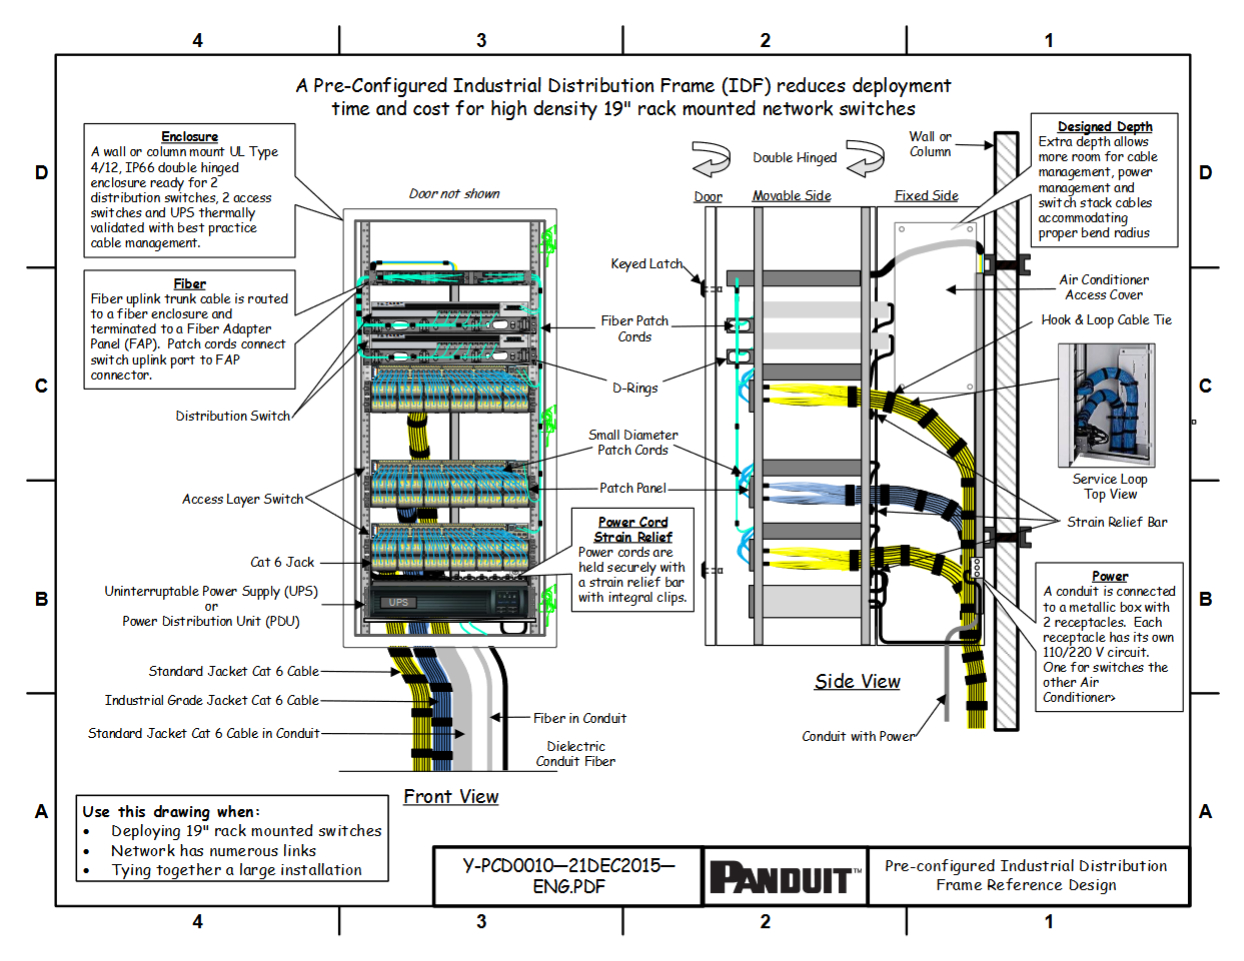 Panduit Cat6 Jack Wiring Diagram Gallery Sample Electrical Distribution Panel Diagrams Download A Pre Configured Industrial Frame Idf Reduces